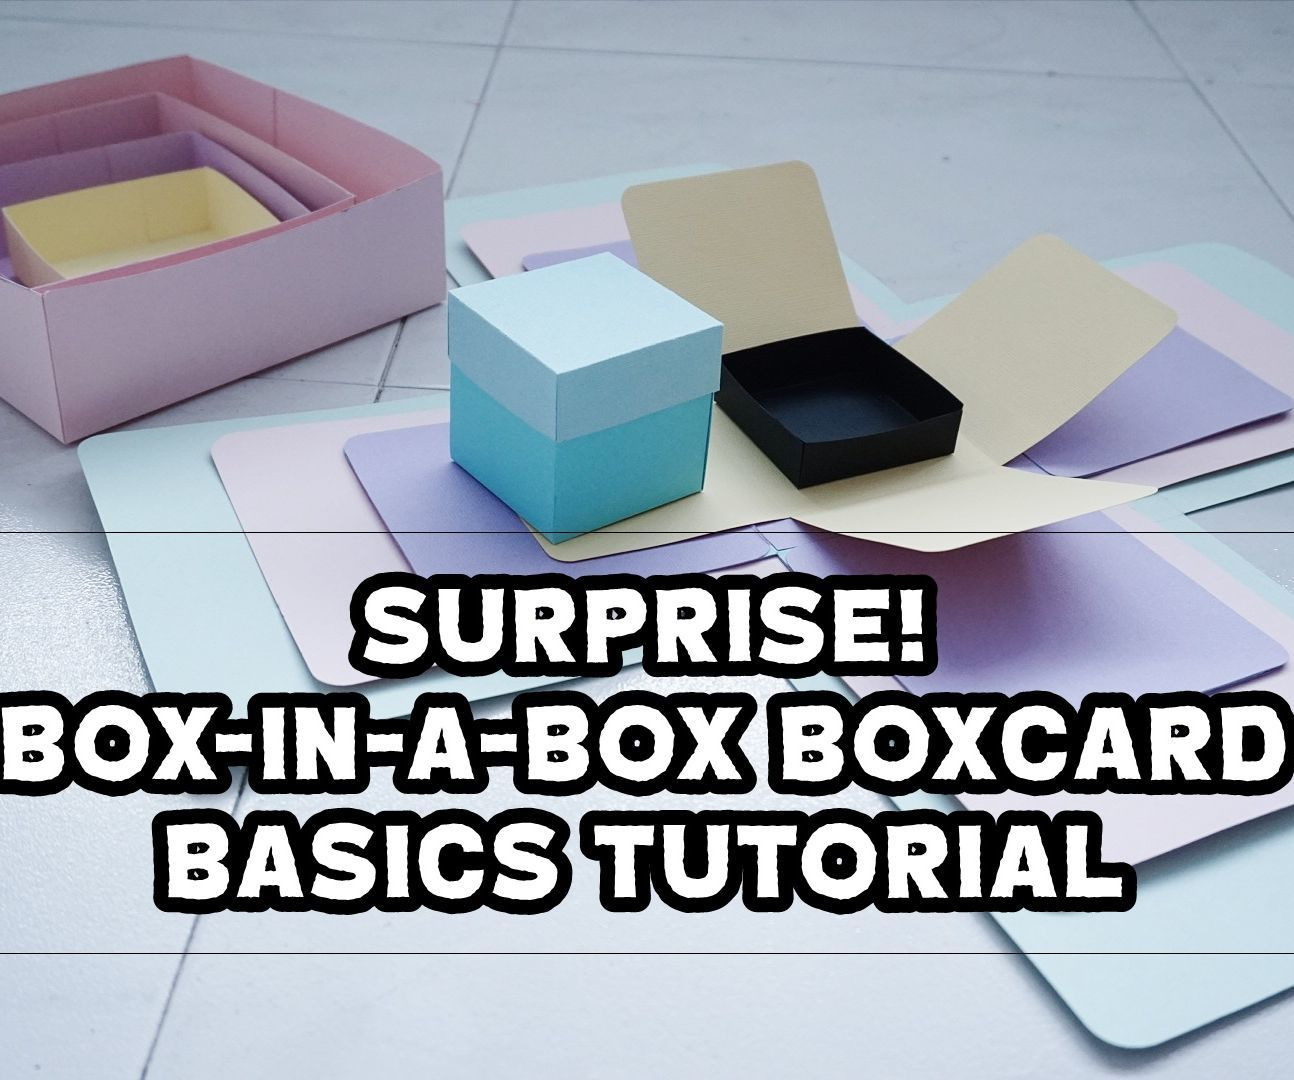 Have you ever wanted to wow someone with many surprises in a simple & heartfelt manner?Well.. This SURPRISE! Box-in-a-box Explosion Box Card design is a special way to do so! All you need to do is to learn the basics for this design and then fill up the spaces with your own inspirations and creativity!The idea of this huge box-in-a-box exploding box card is to make your gift recipient enjoy the excitement of what lies within one box after another. The fun part? Sizes of each box within o...